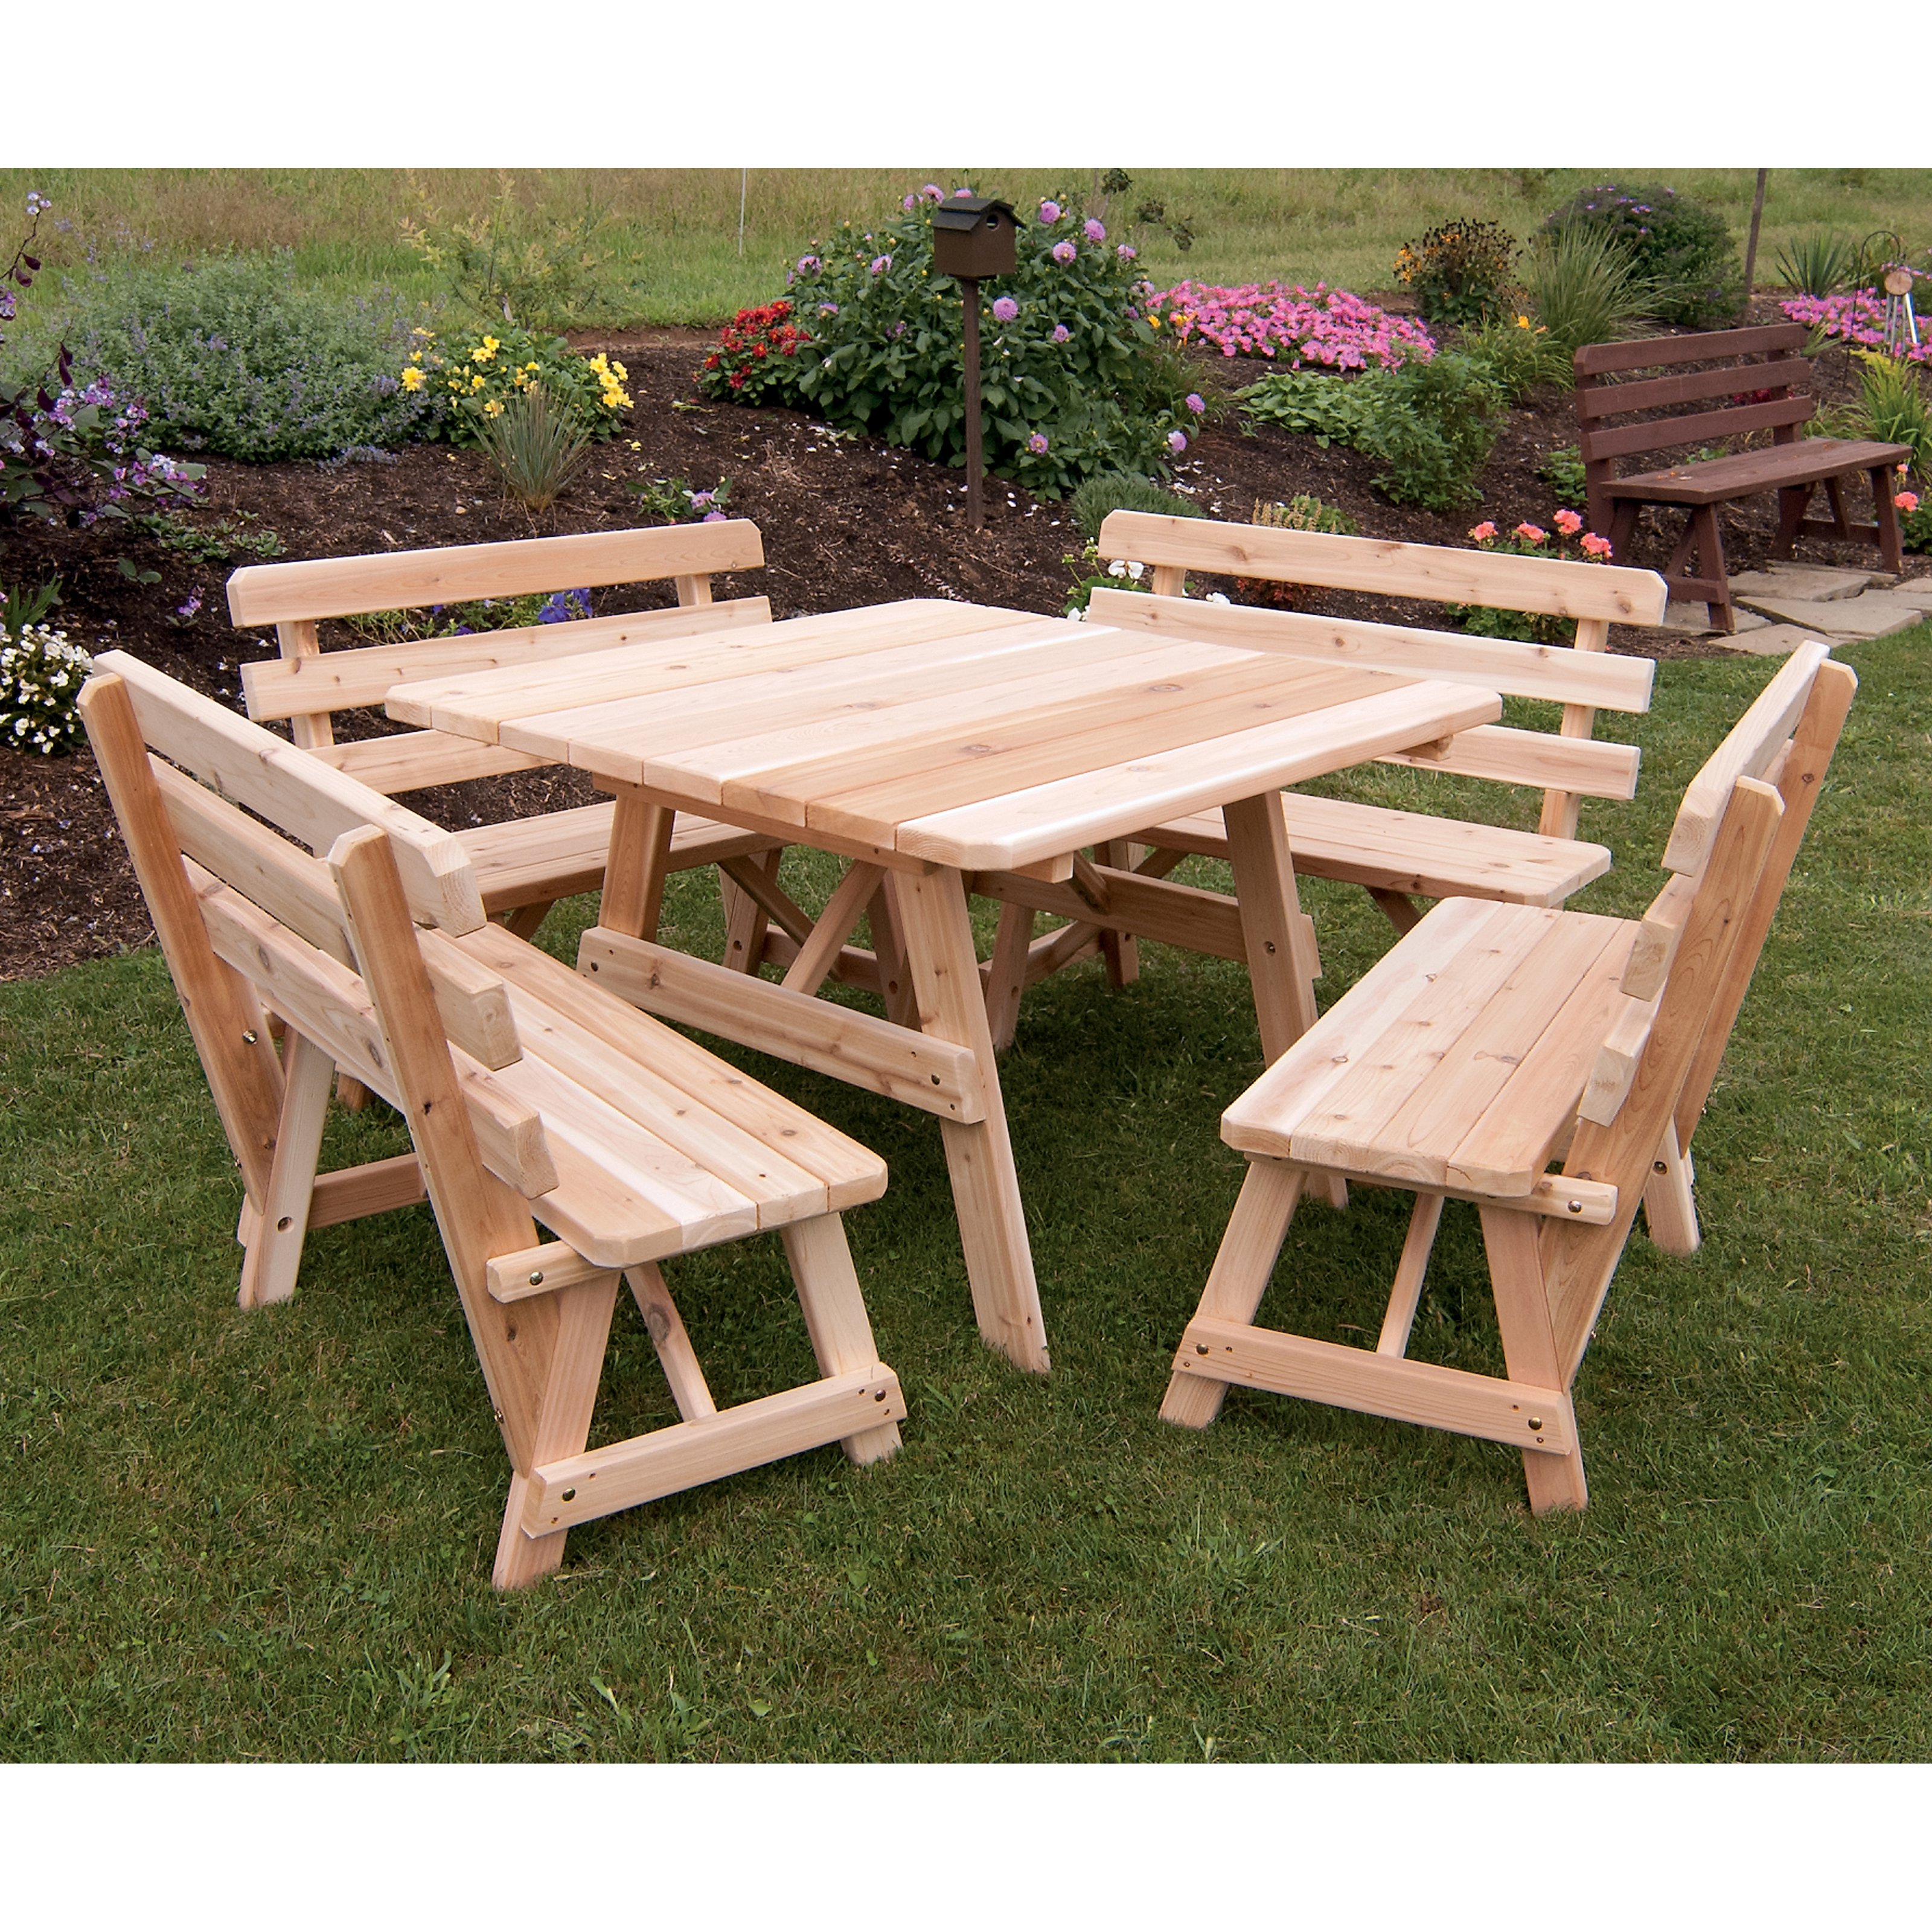 A & L Furniture Pine Cross Legged Picnic Table with Benches